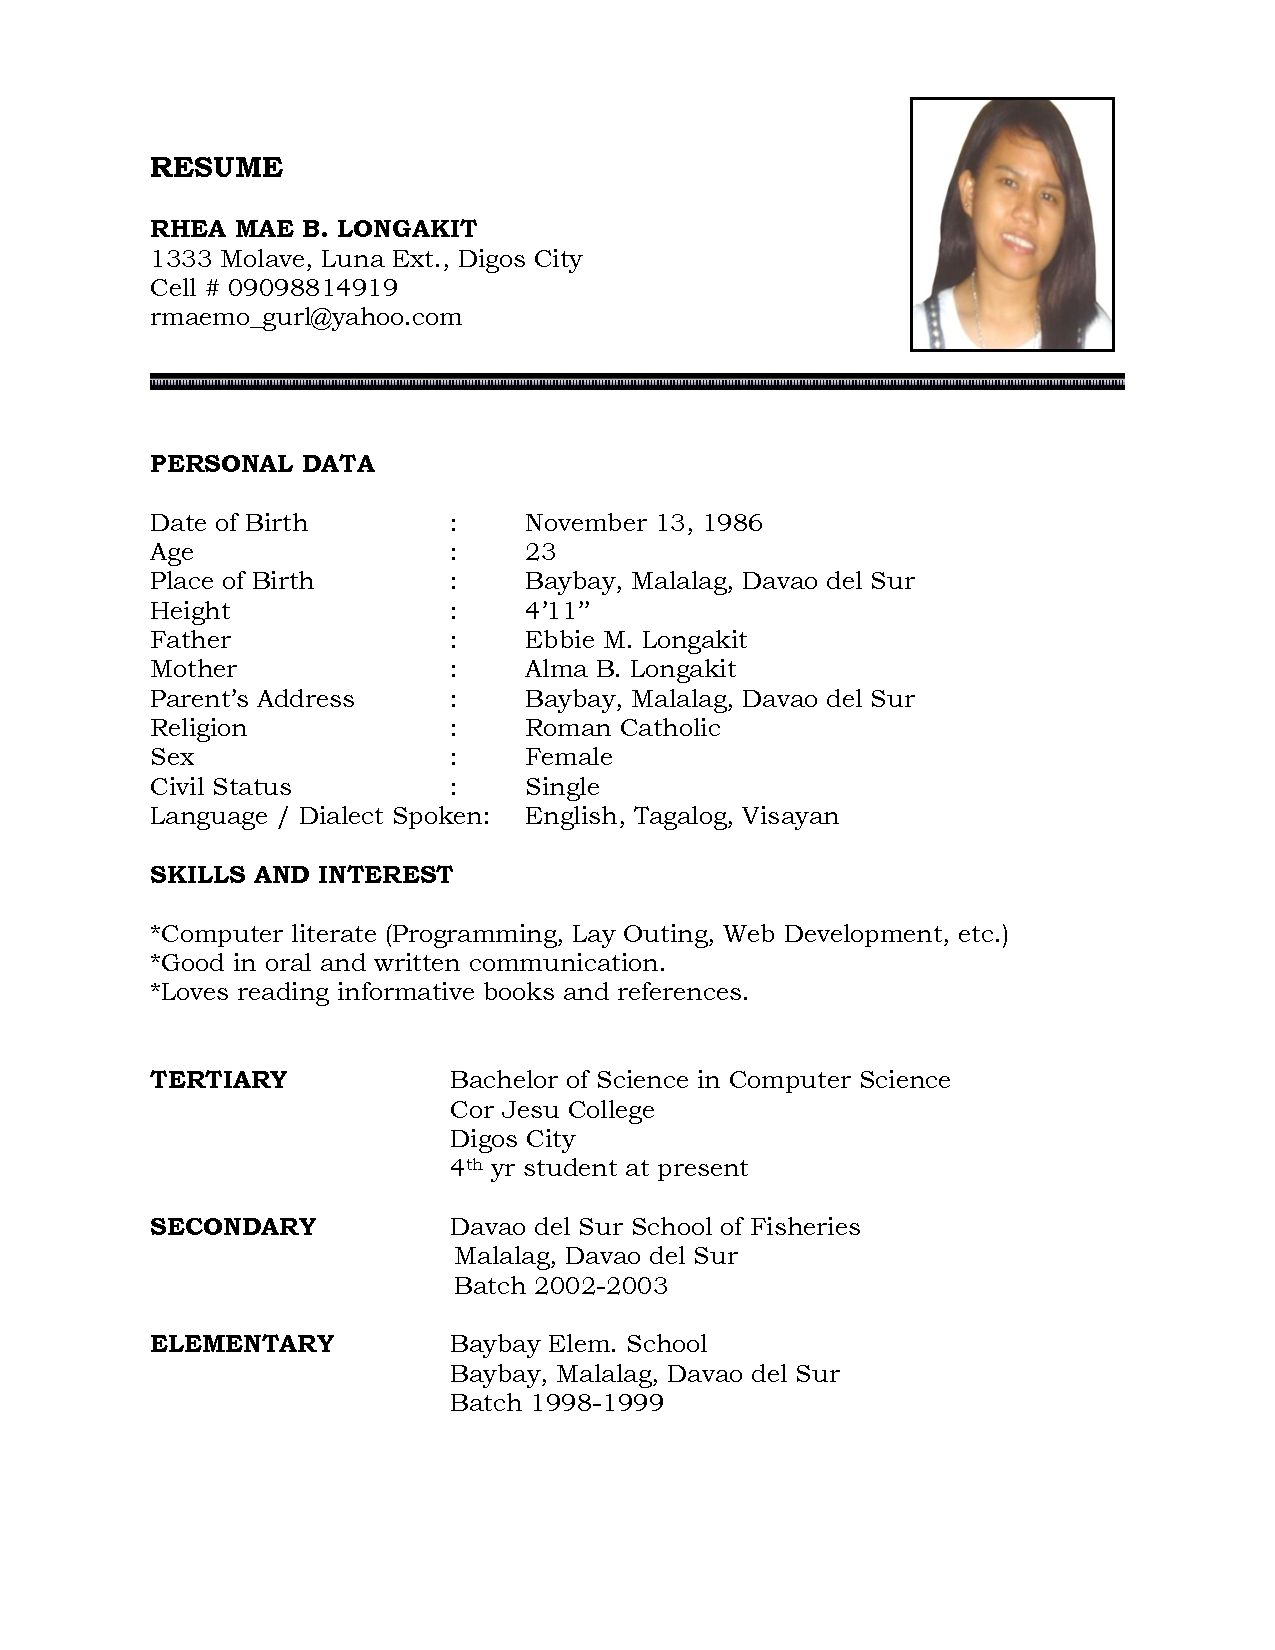 Format For A Resume For A Job Resume Sample Simple De9e2a60f The Simple Format Of Resume